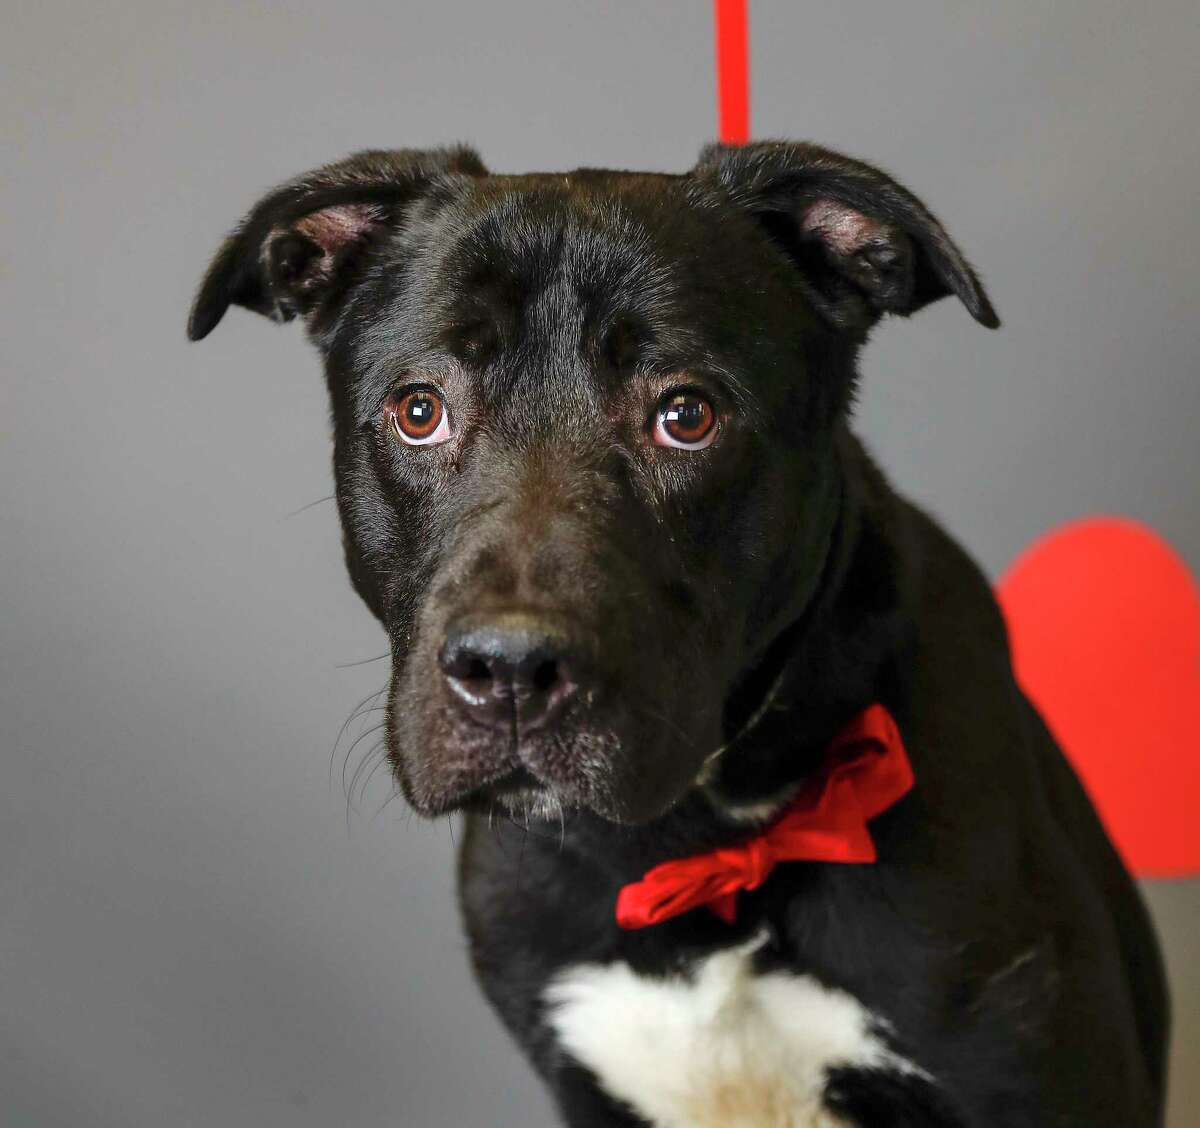 Colby (A548849) is a 1year-old, male, black/white Labrador retriever mix available for adoption from the Harris County Animal Shelter, Tuesday, Jan. 28, 2020, in Houston. Colby was surrendered by his owner, who was not the original owner. Colby's previous owners abandoned him at the current owner's residence a month ago, and he has been caring for the dog ever since, but is not able to continue caring for him. He says that Colby is a very friendly dog, who is housebroken and has a